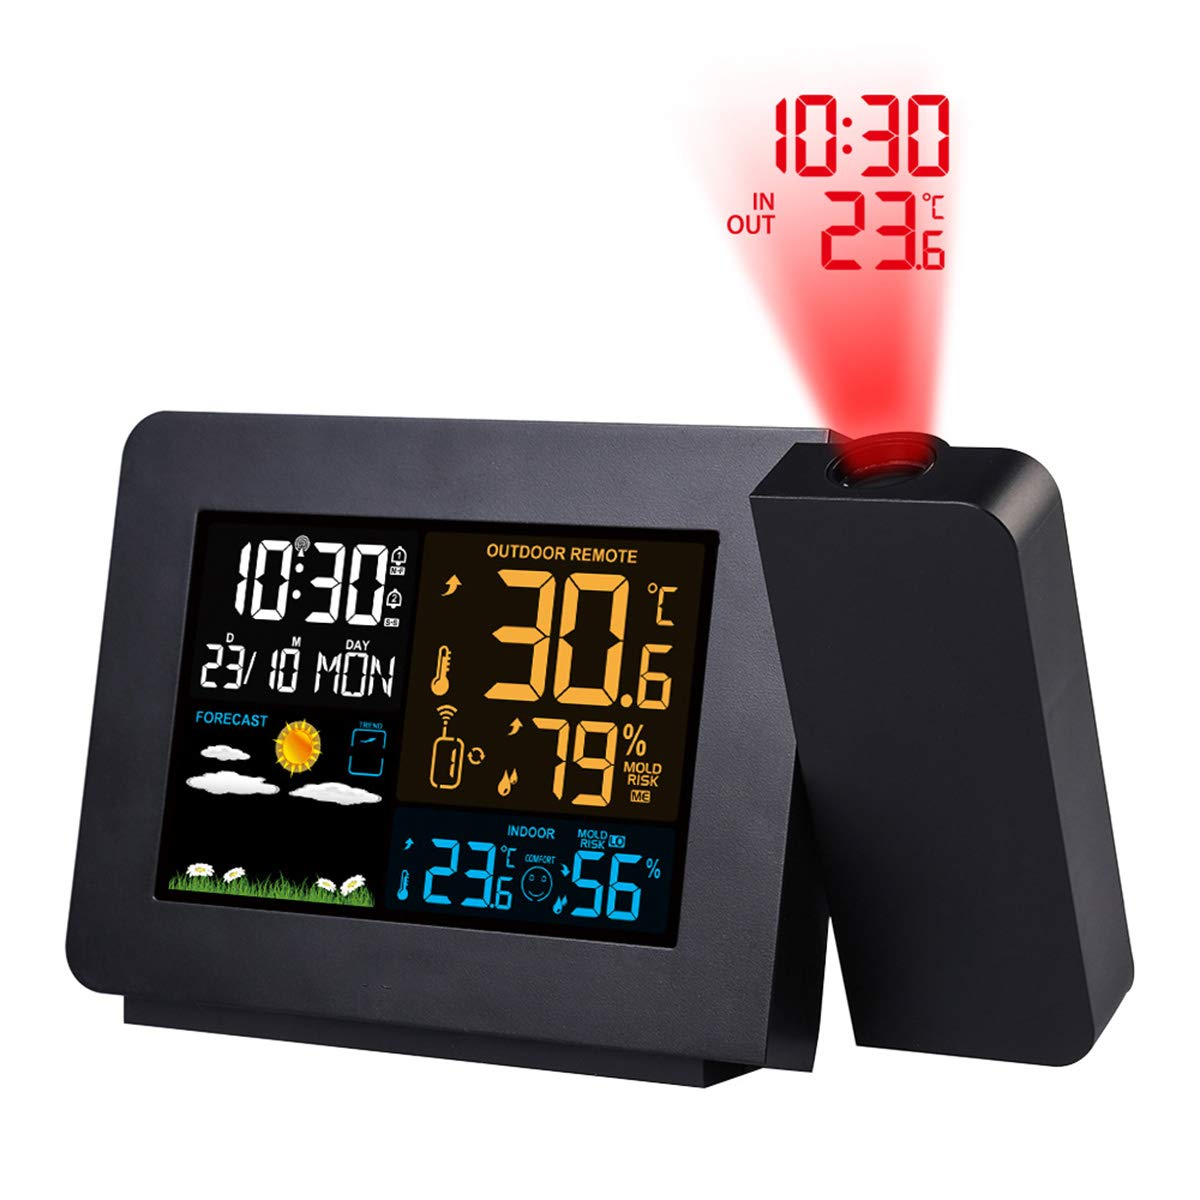 Uhruolo Digital Projection Alarm Clock - 180 Degree Adjustable Projector Clock on Ceiling with Temperature Display, Date Display, Dual Alarms, Weather Forecast, 4 Types of Backlight by Uhruolo